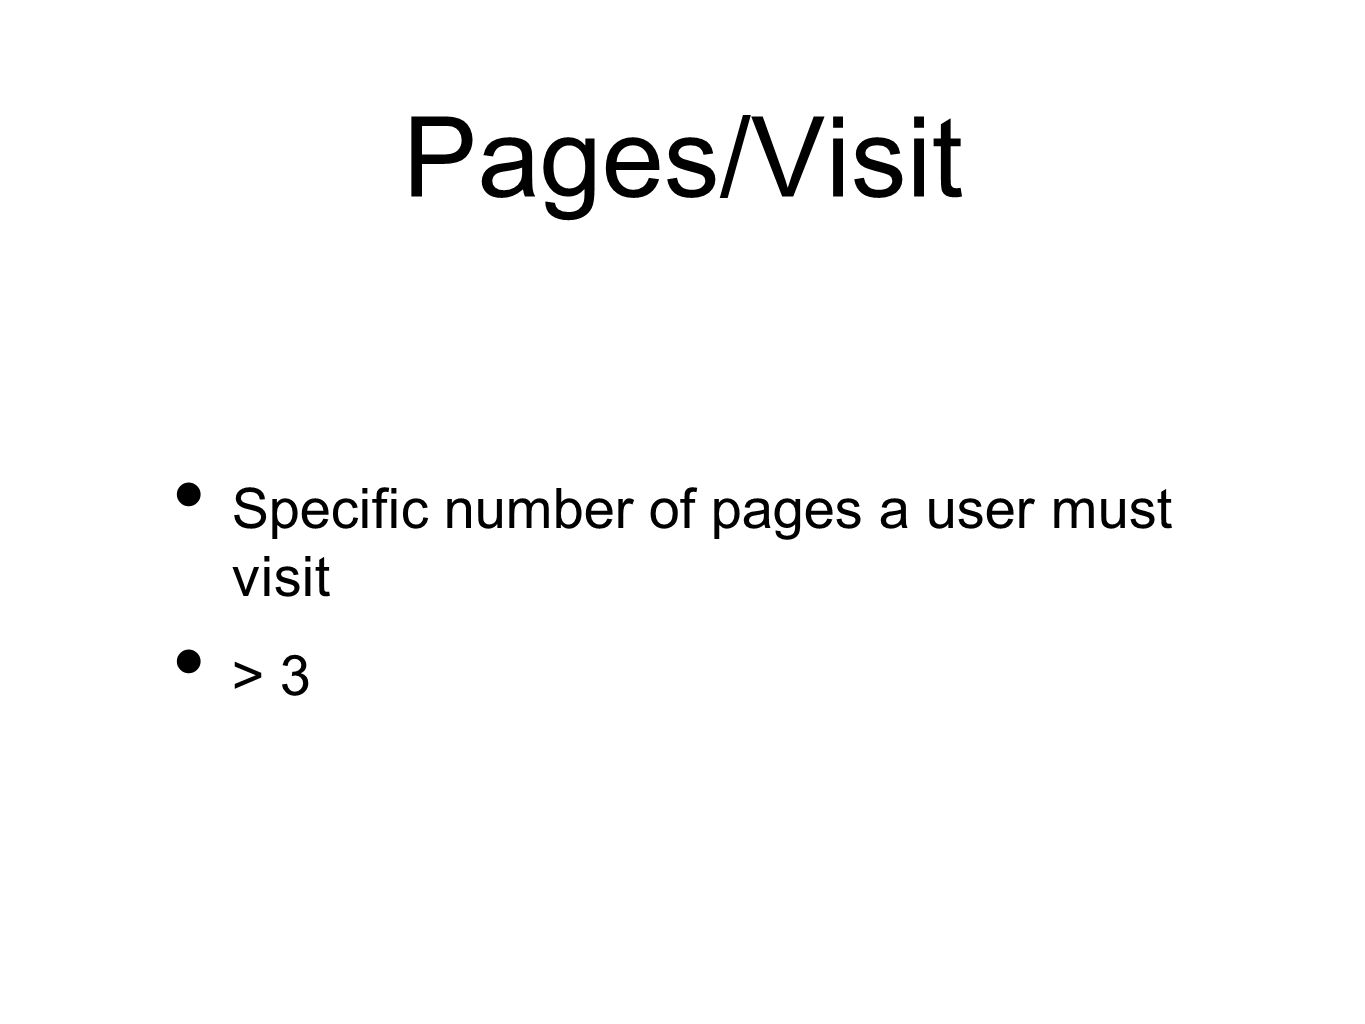 Pages/Visit Specific number of pages a user must visit > 3